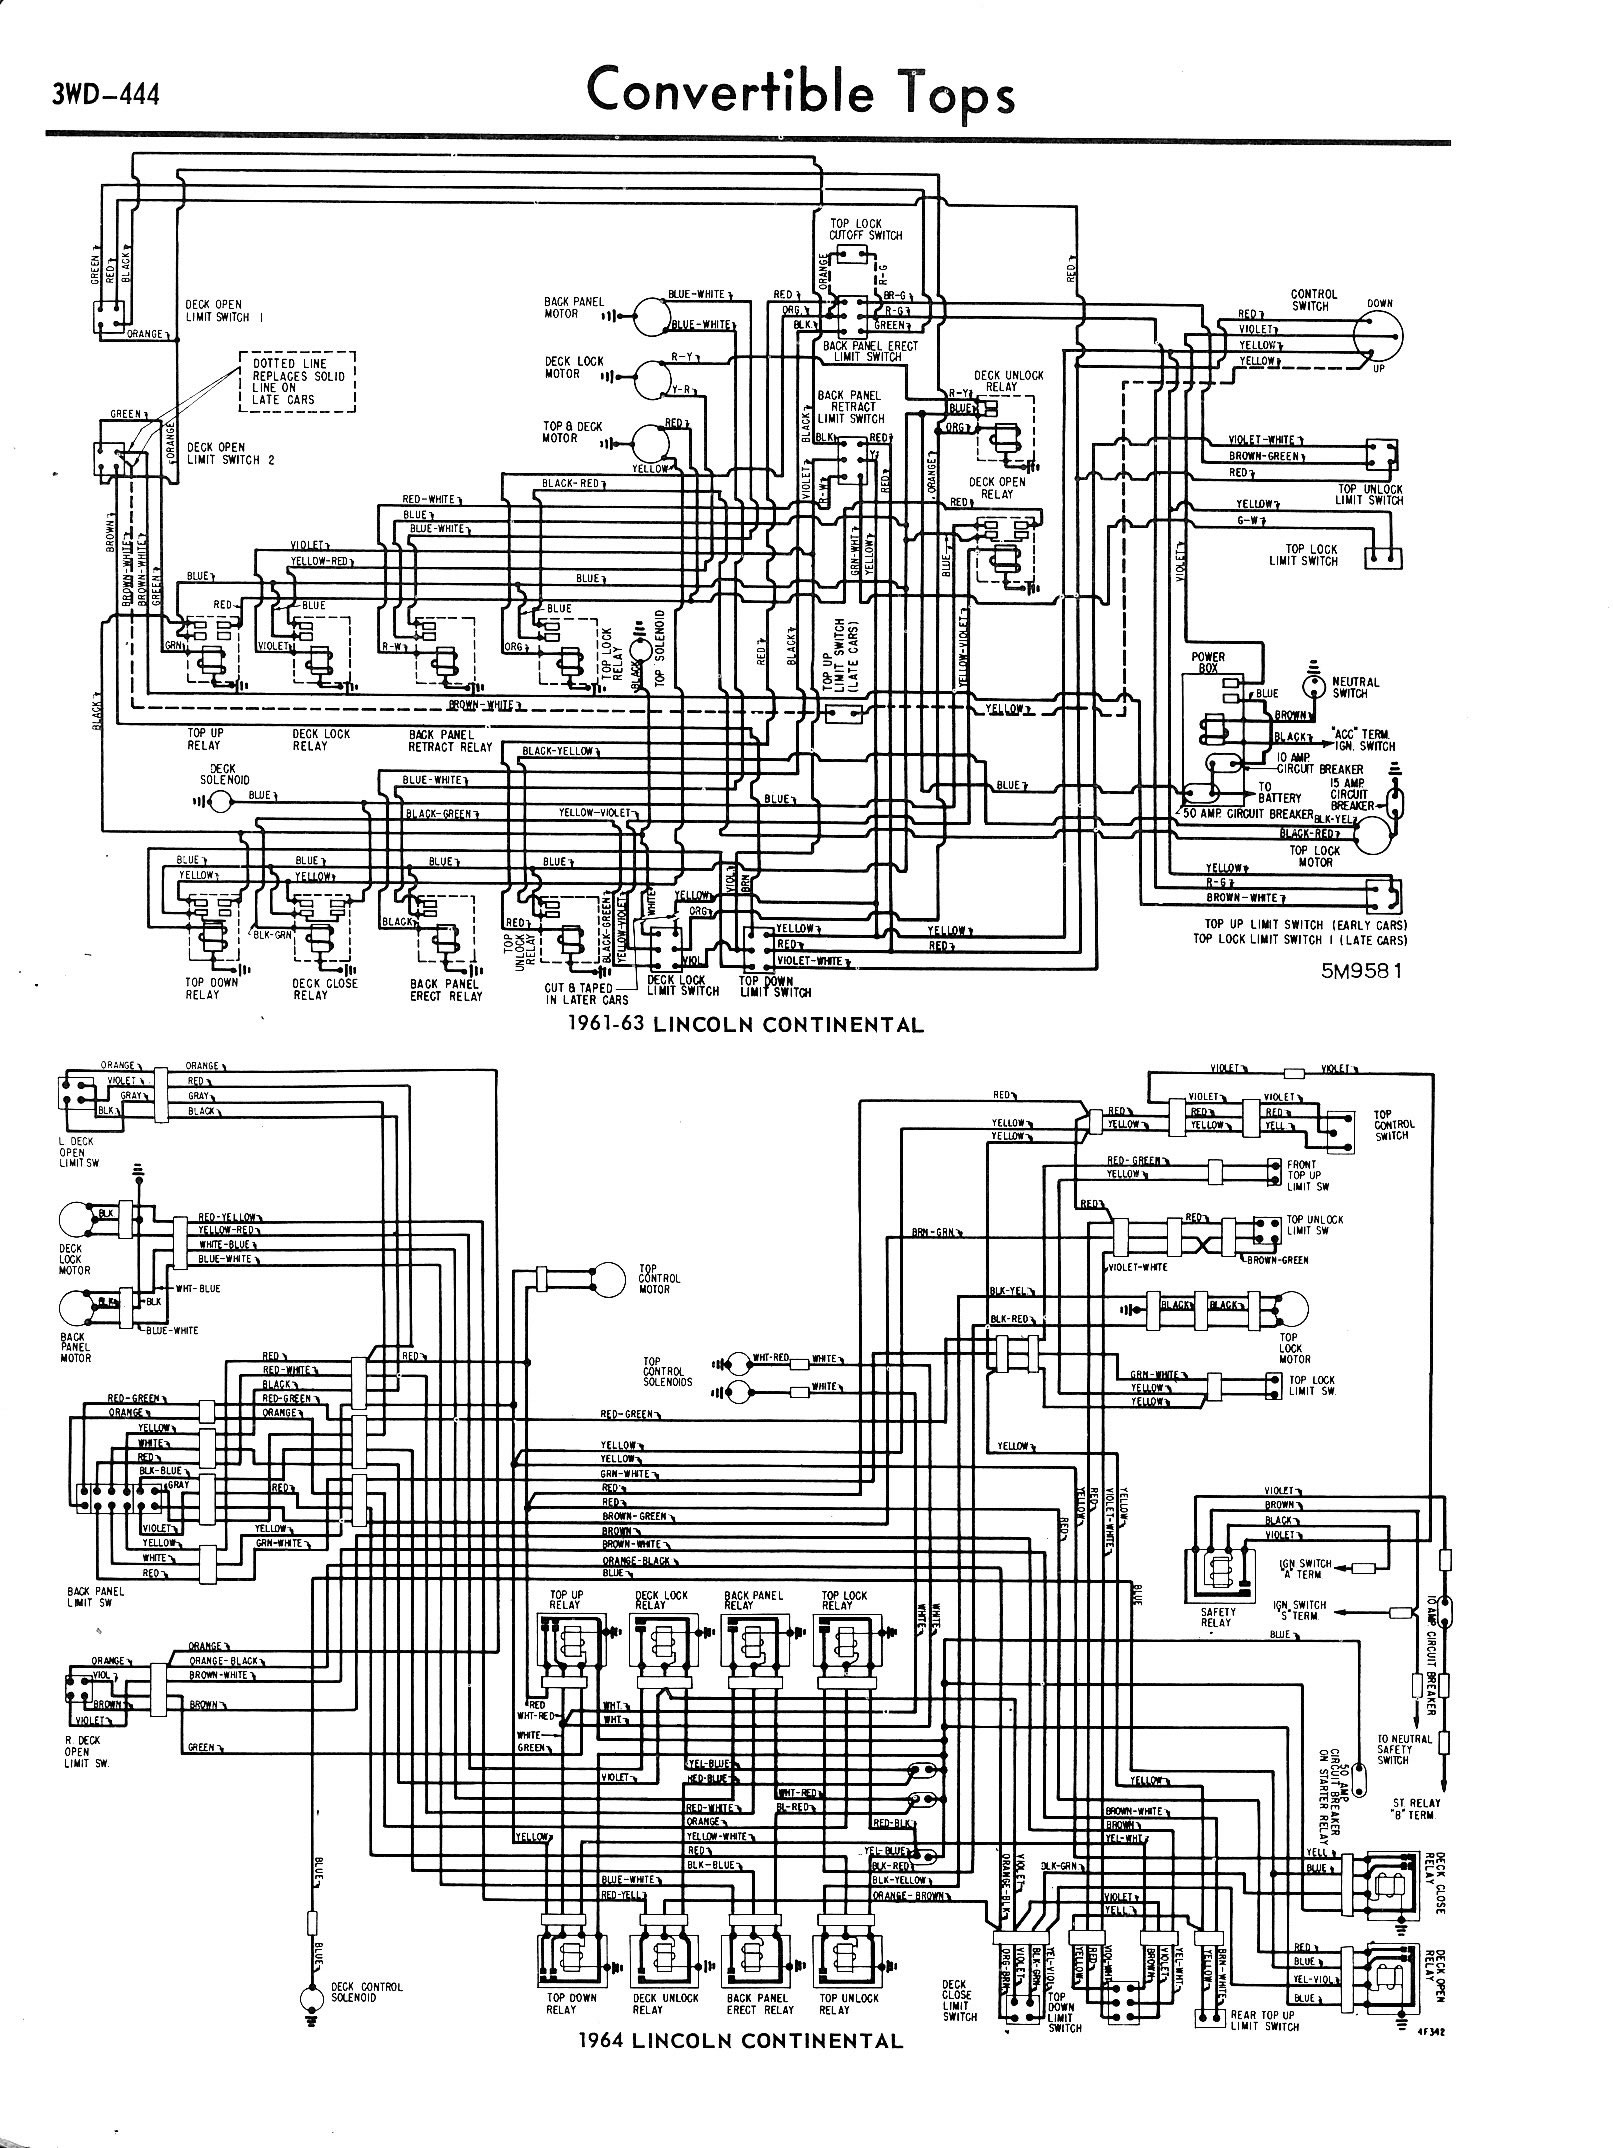 1984 lincoln continental wiring diagram content resource of wiring 1968  lincoln continental wiring diagram ford diagrams